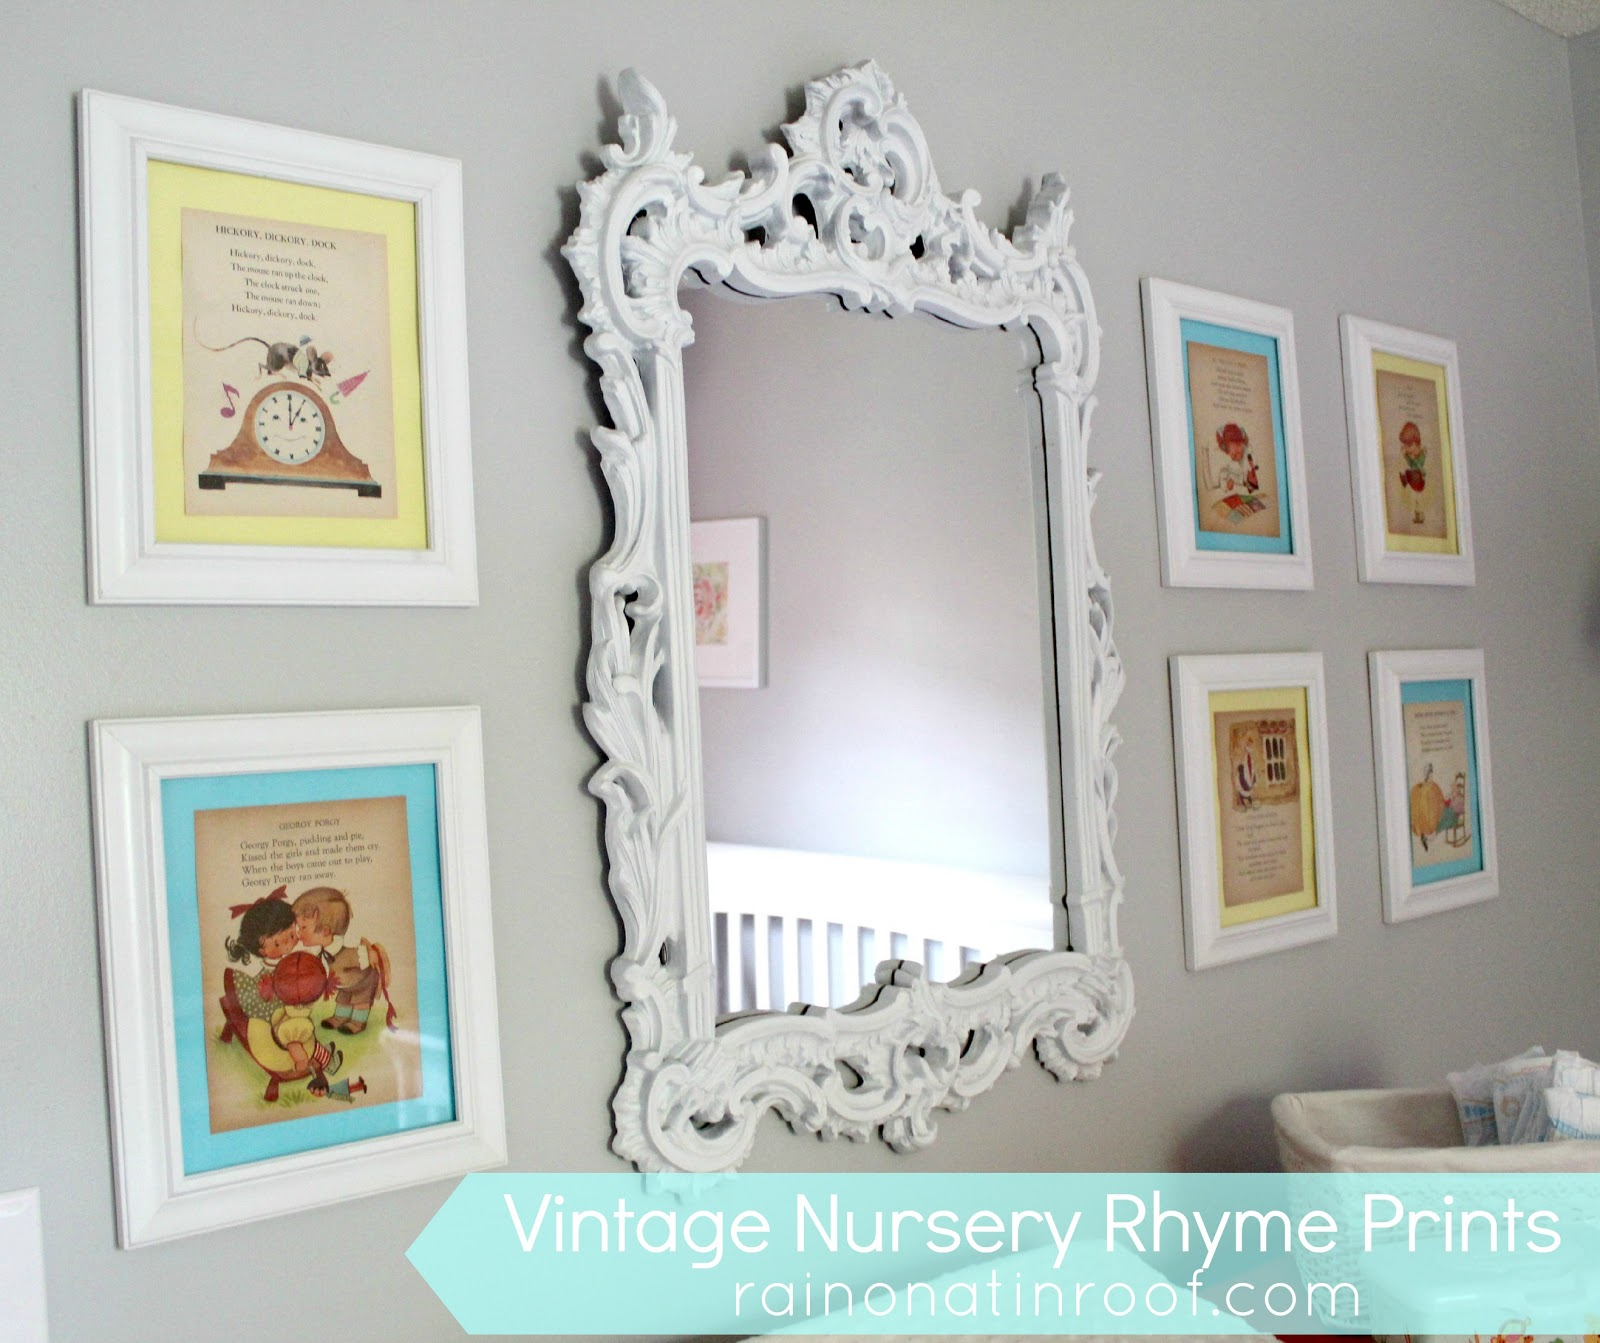 Diy vintage nursery rhyme prints simple cheap for Cheap framed prints online